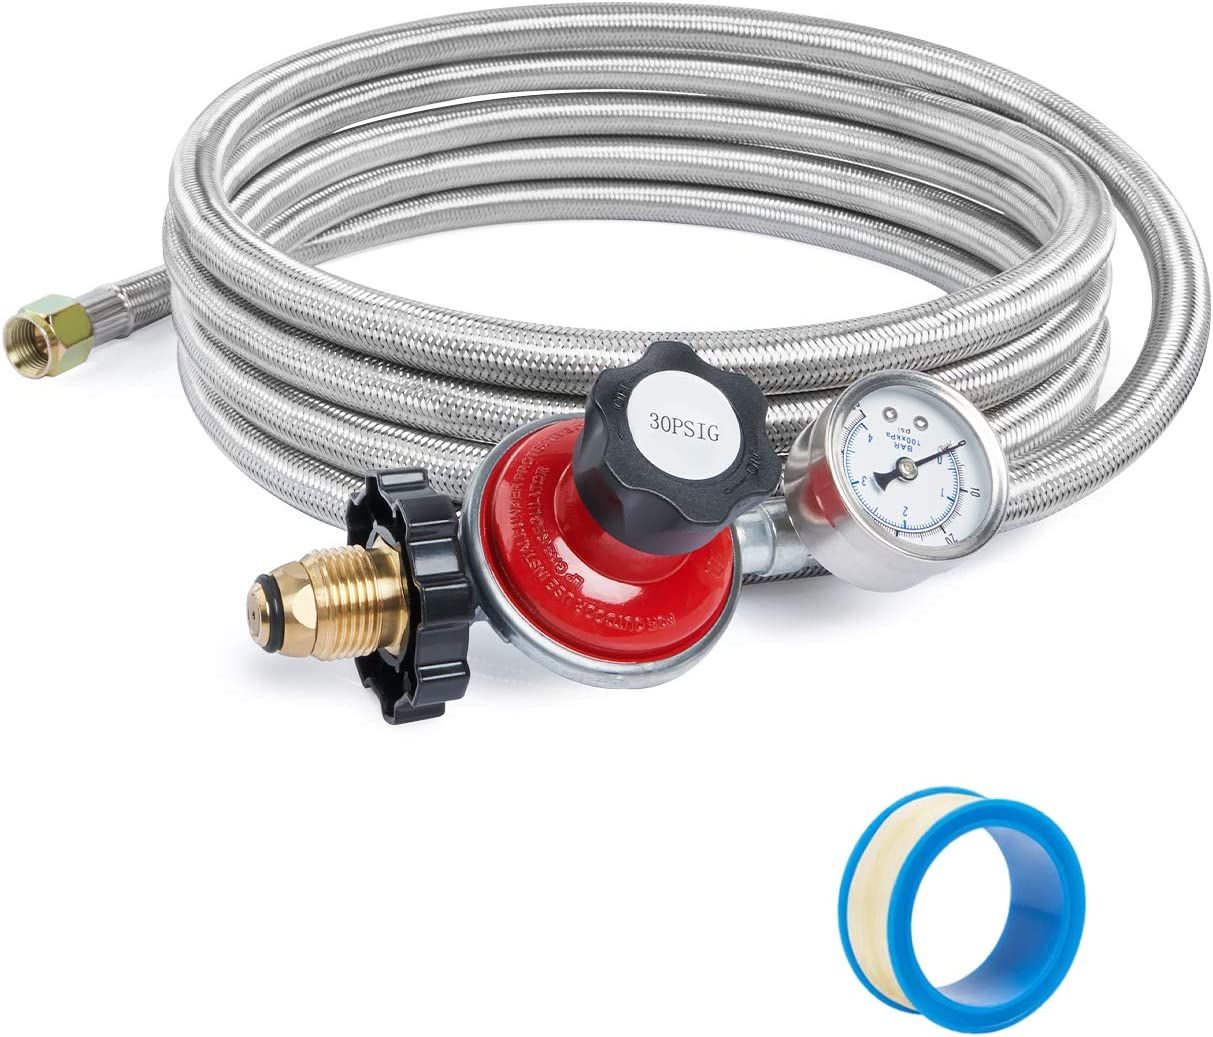 SHINESTAR 12FT 30PSI Adjustable Propane Regulator Hose with Gauge for Fire Pit,Grill,Forge,Gas Cooker, Stainless Steel Braided, POL x 3/8 Female Flare Connection